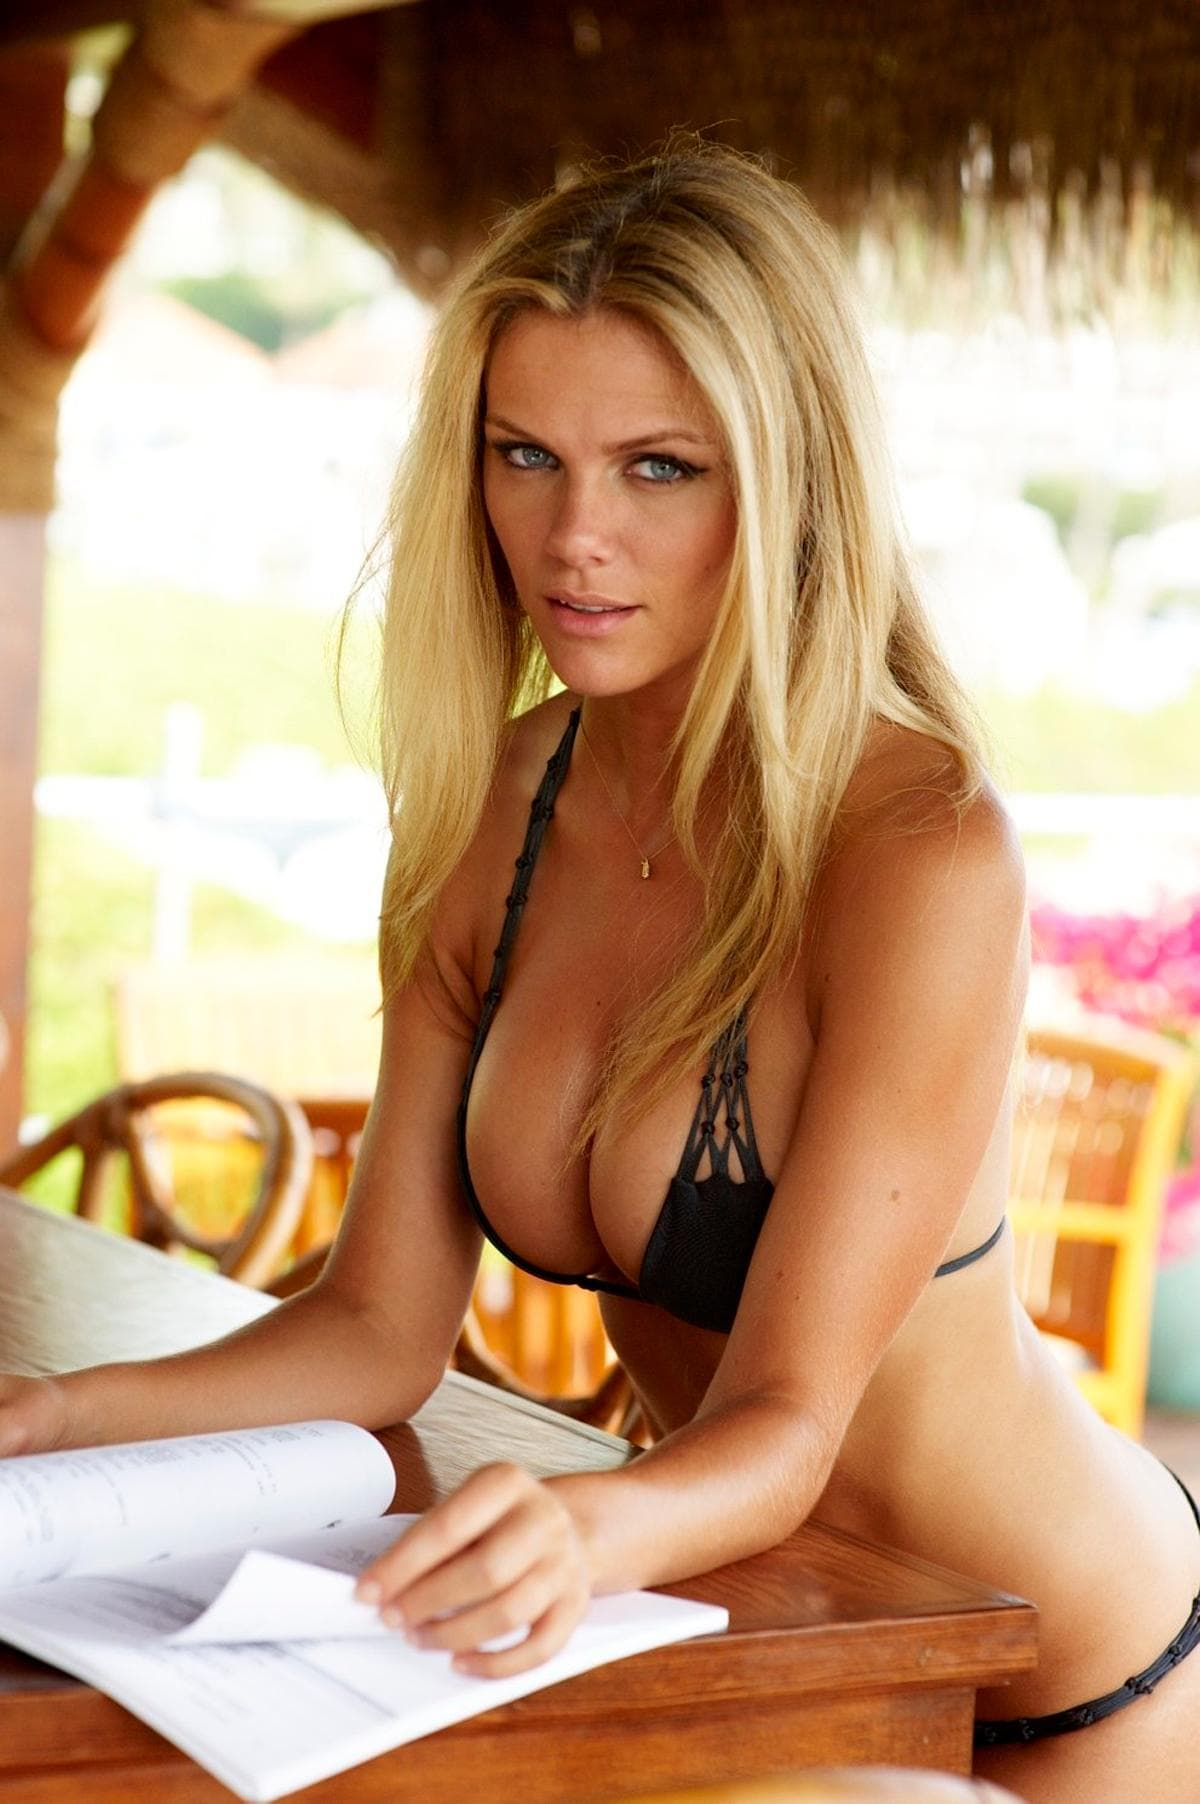 Brooklyn Decker Wallpaper